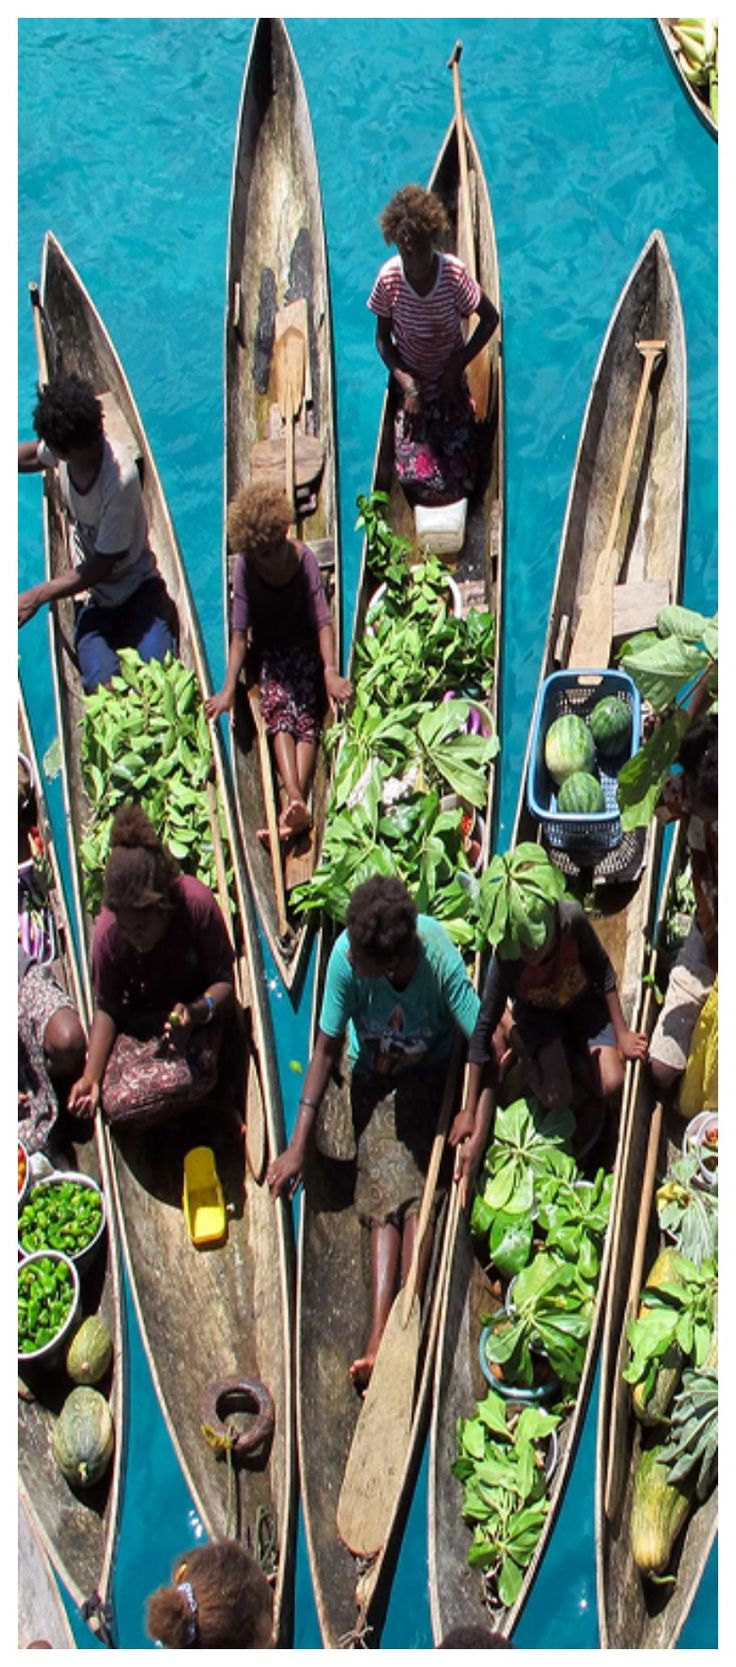 If you love the Solomon Islands as much as we do - make sure to visit the floating markets! #travel #amazing #culture